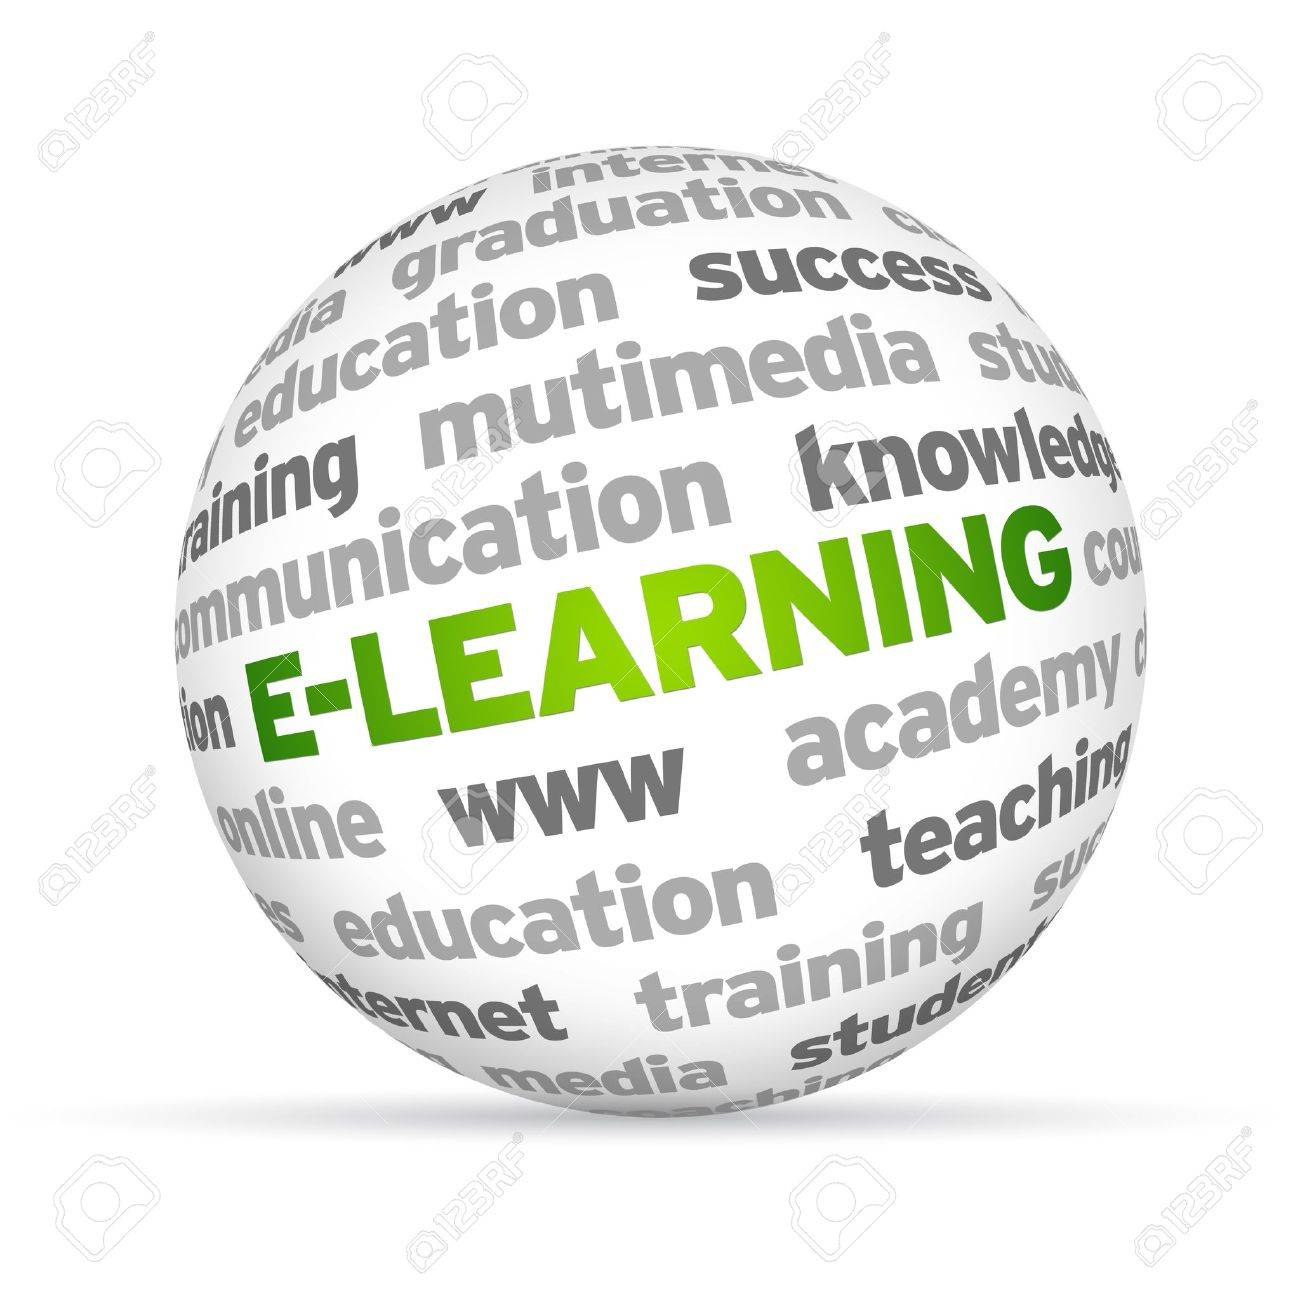 3d E-Learning Word Sphere on white background. Stock Photo - 13779208